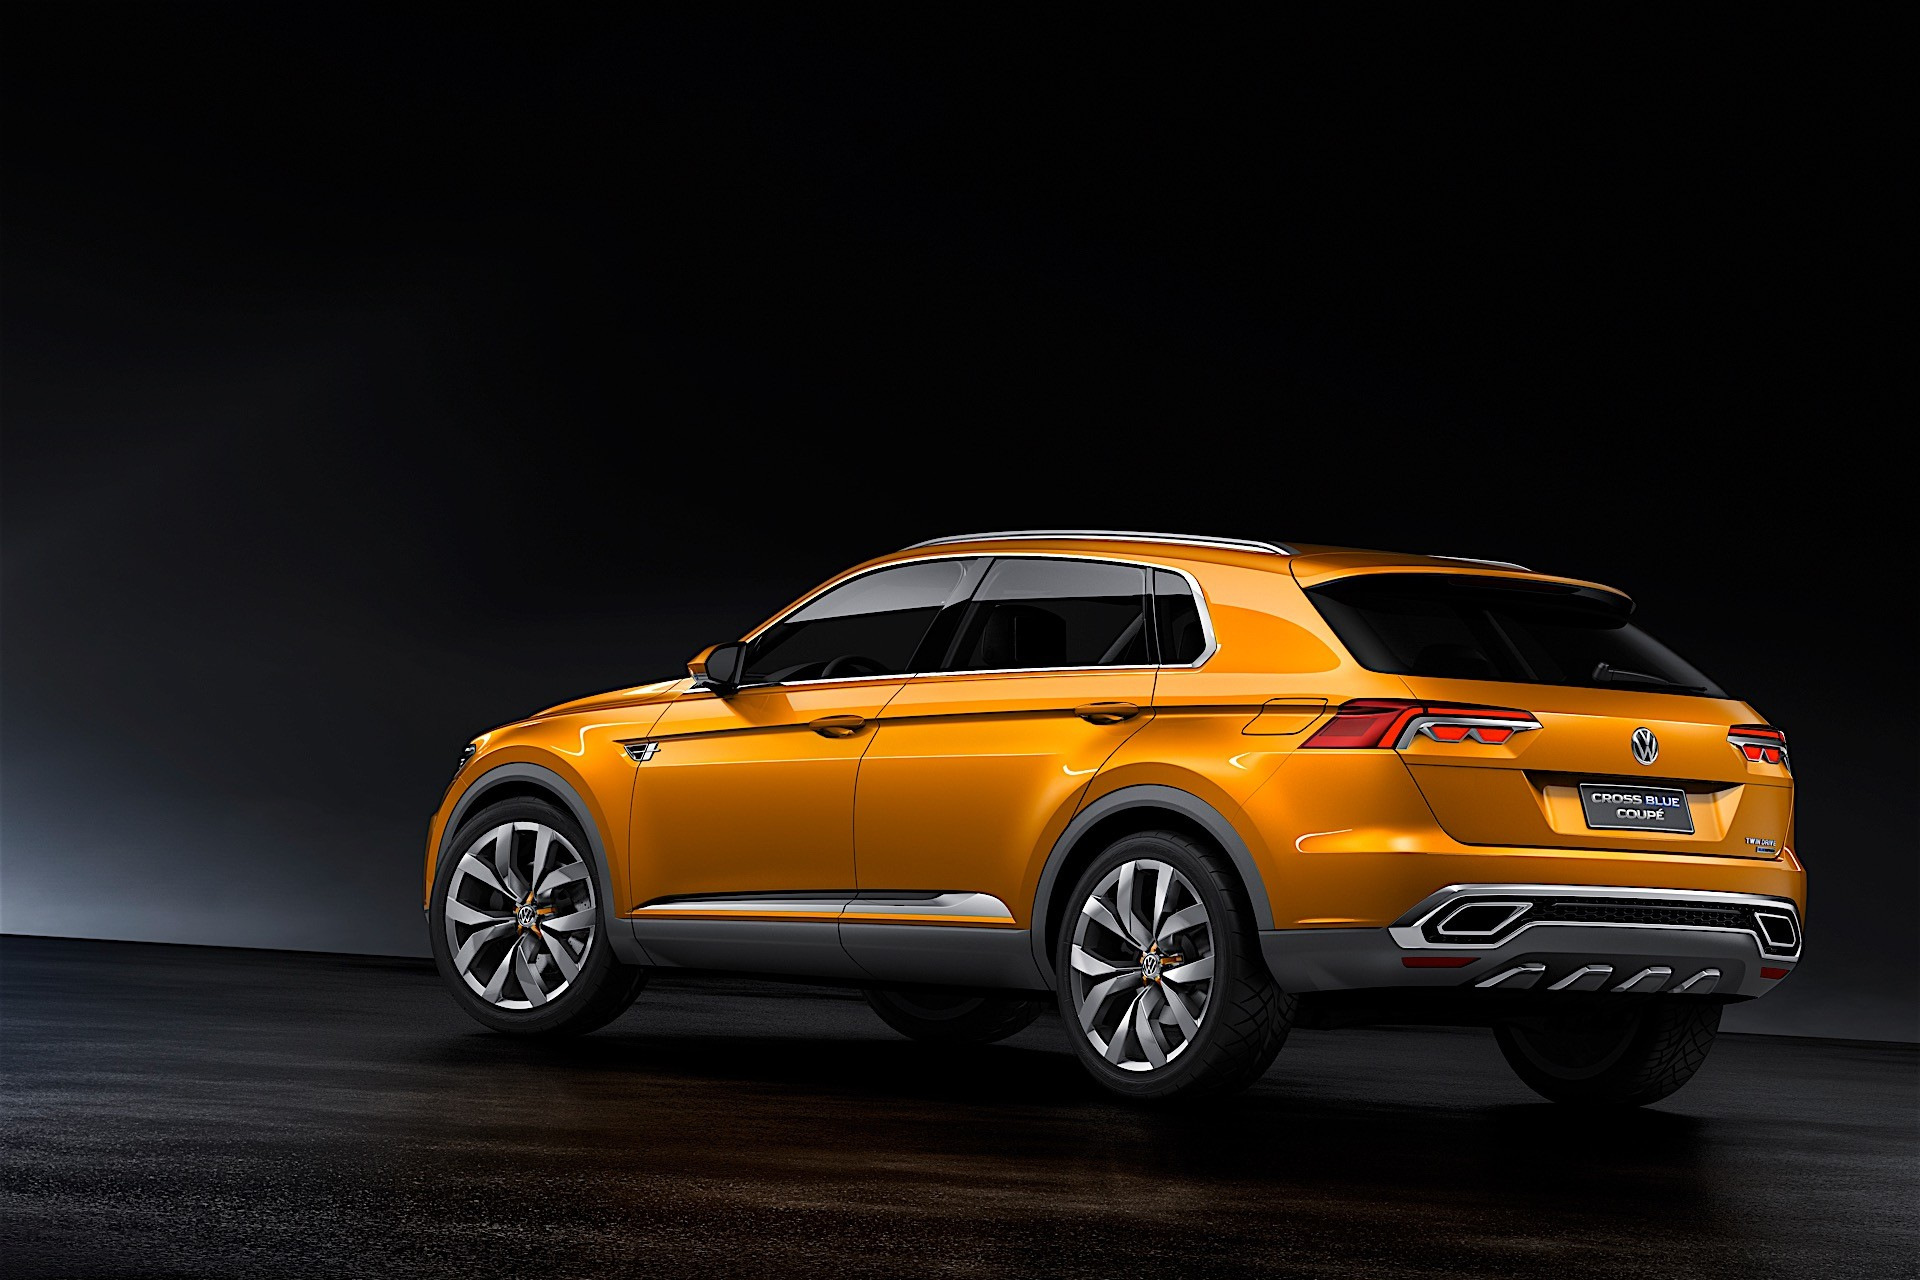 Volkswagen S Next Suv Might Be Called Teramont Other Names Still On Table Autoevolution